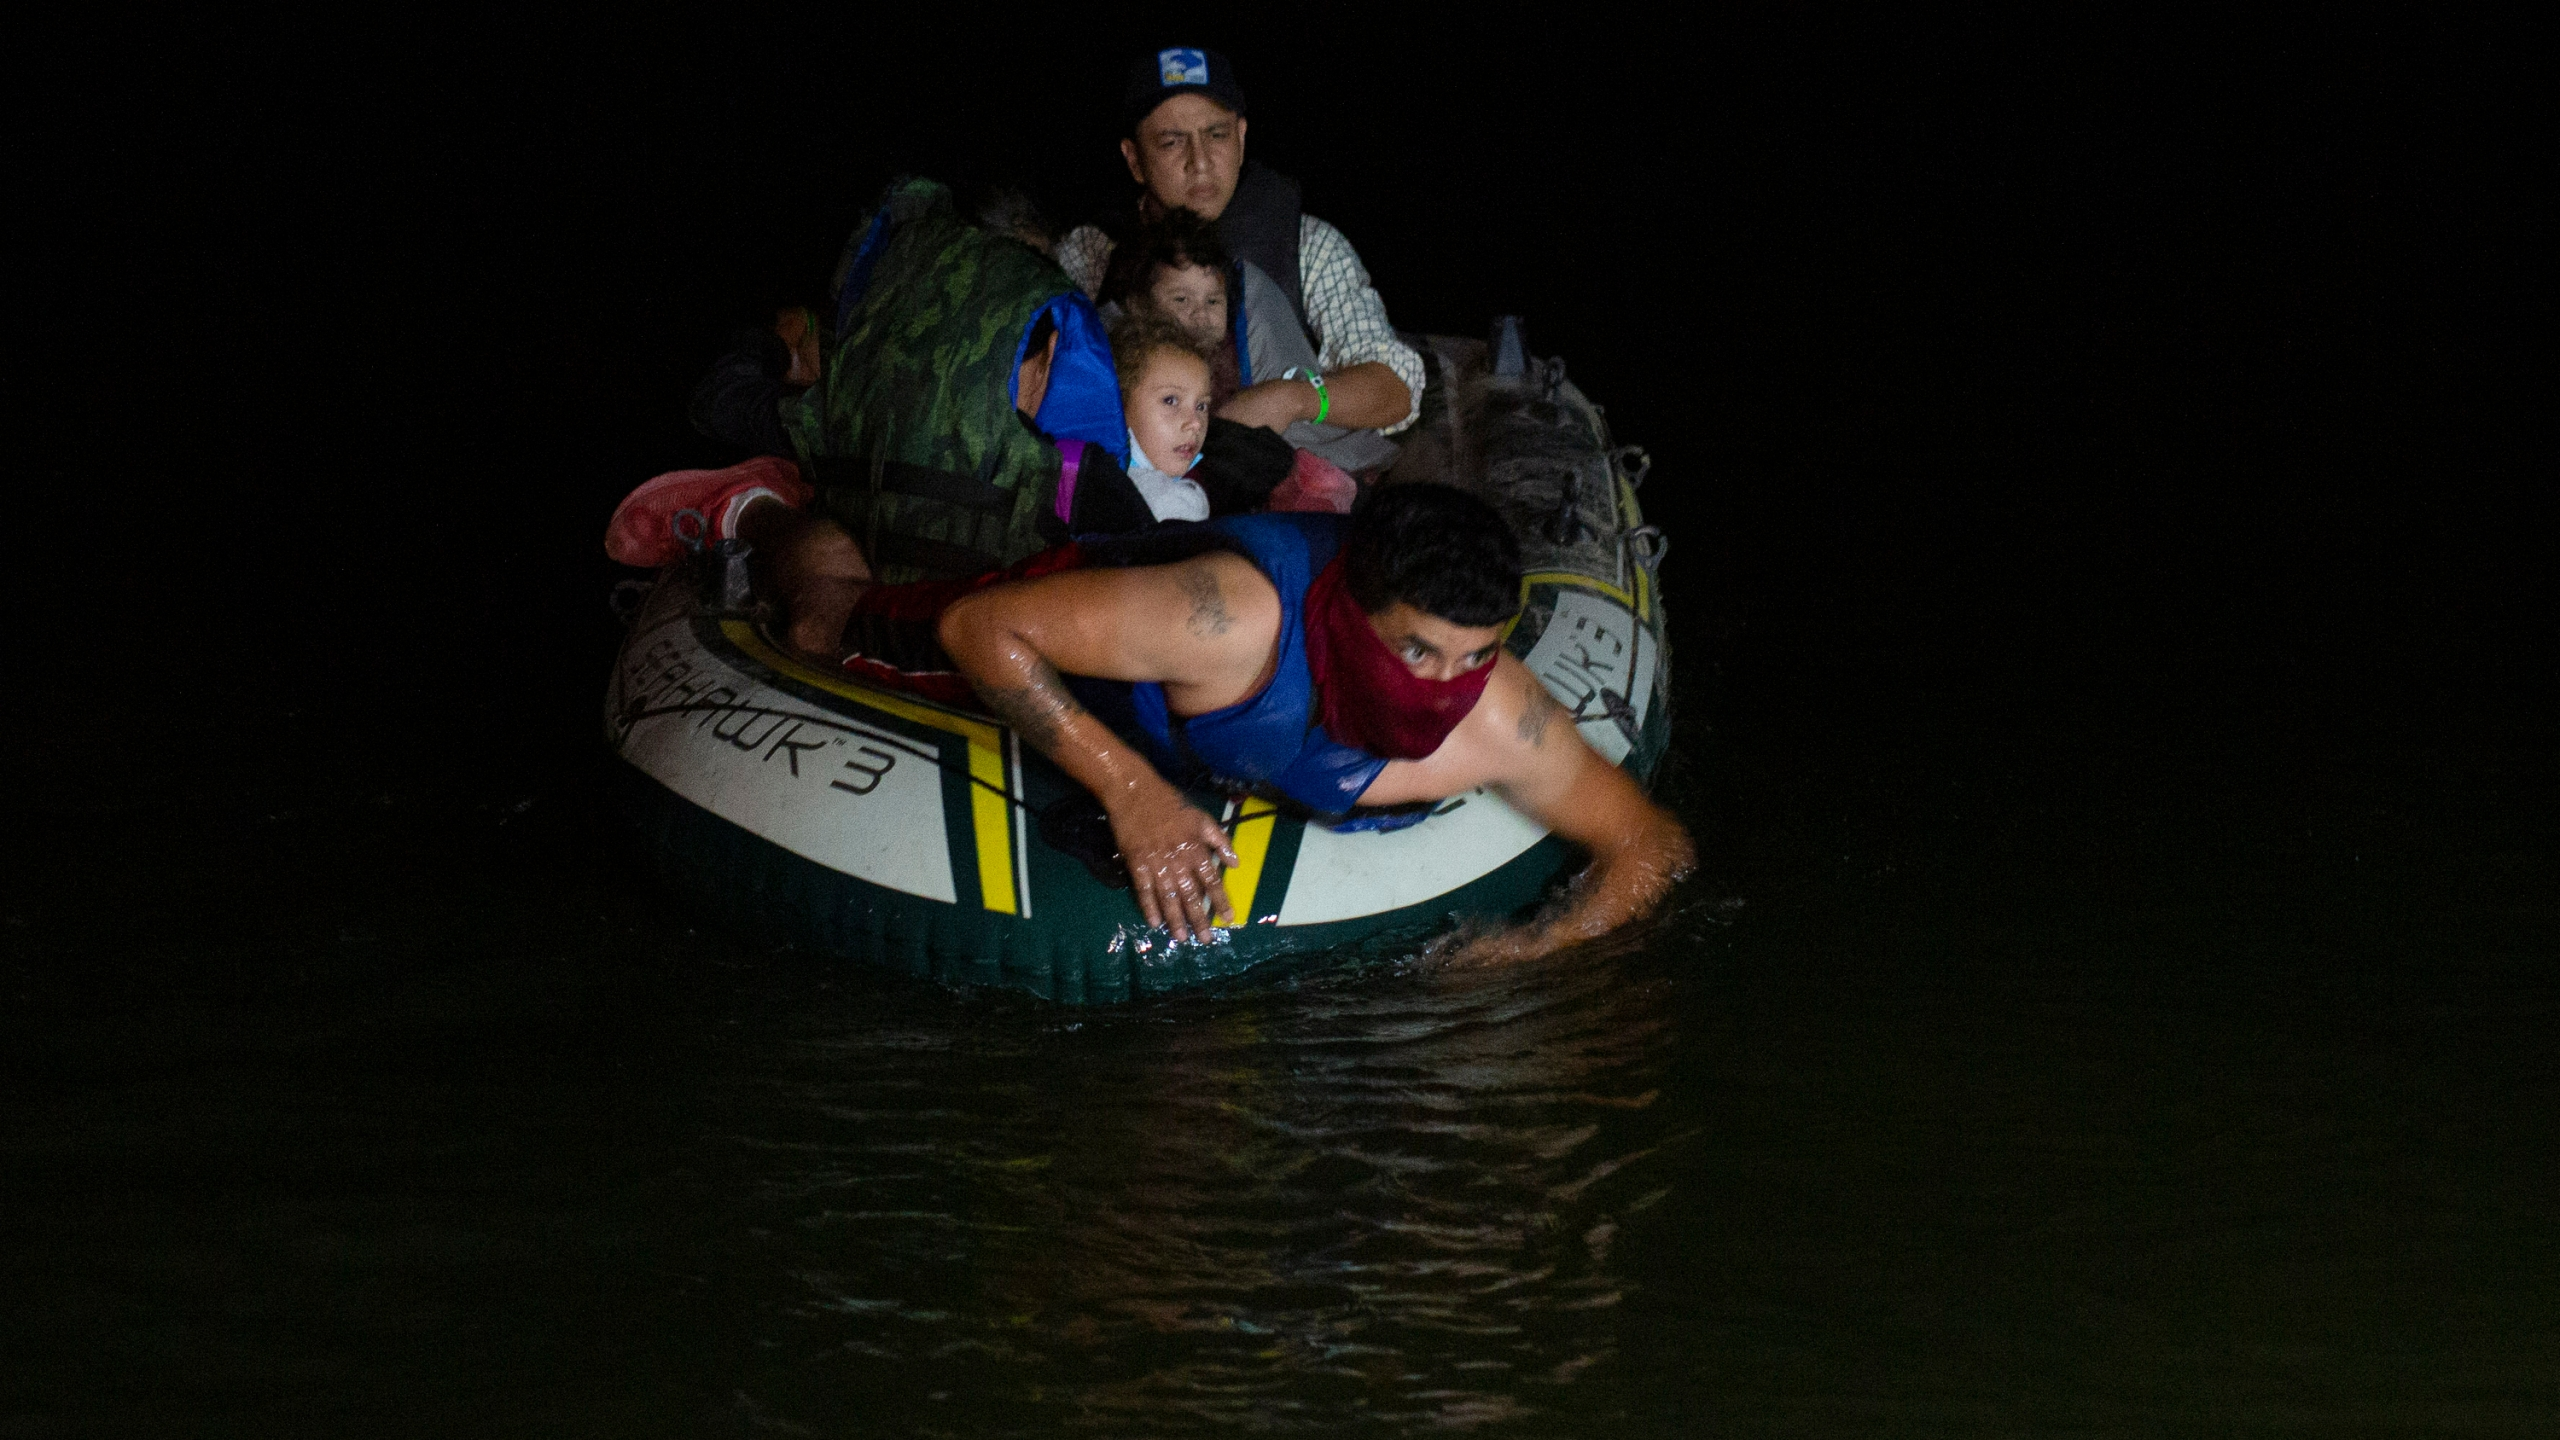 In this March 30, 2021 file photo, a smuggler takes migrants, mostly from Central American countries, on a small inflatable raft towards U.S. soil, in Roma, Texas. (Dario Lopez-Mills, Associated Press)